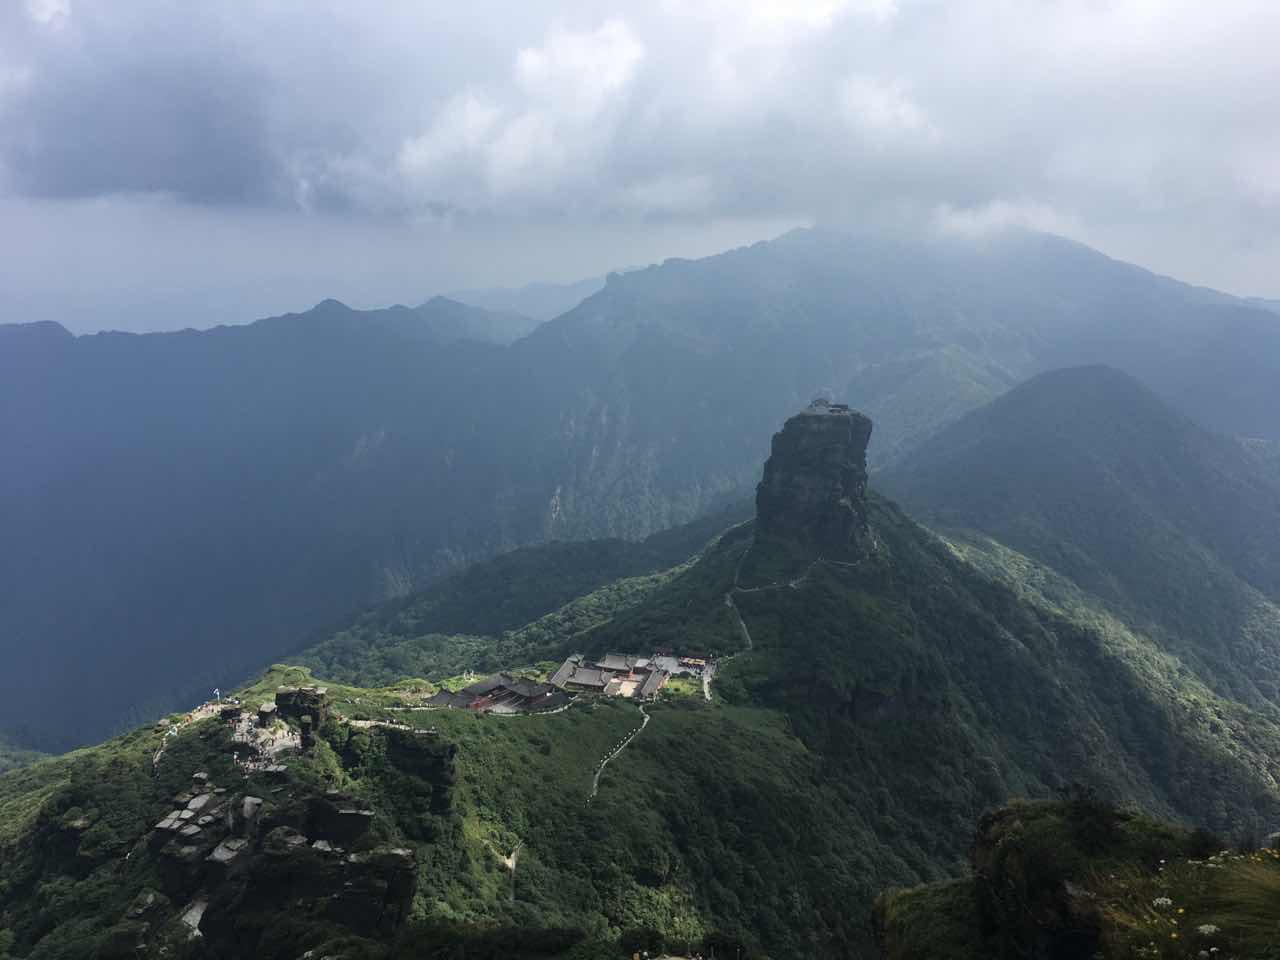 Fanjing mountain, Guizhou province, China